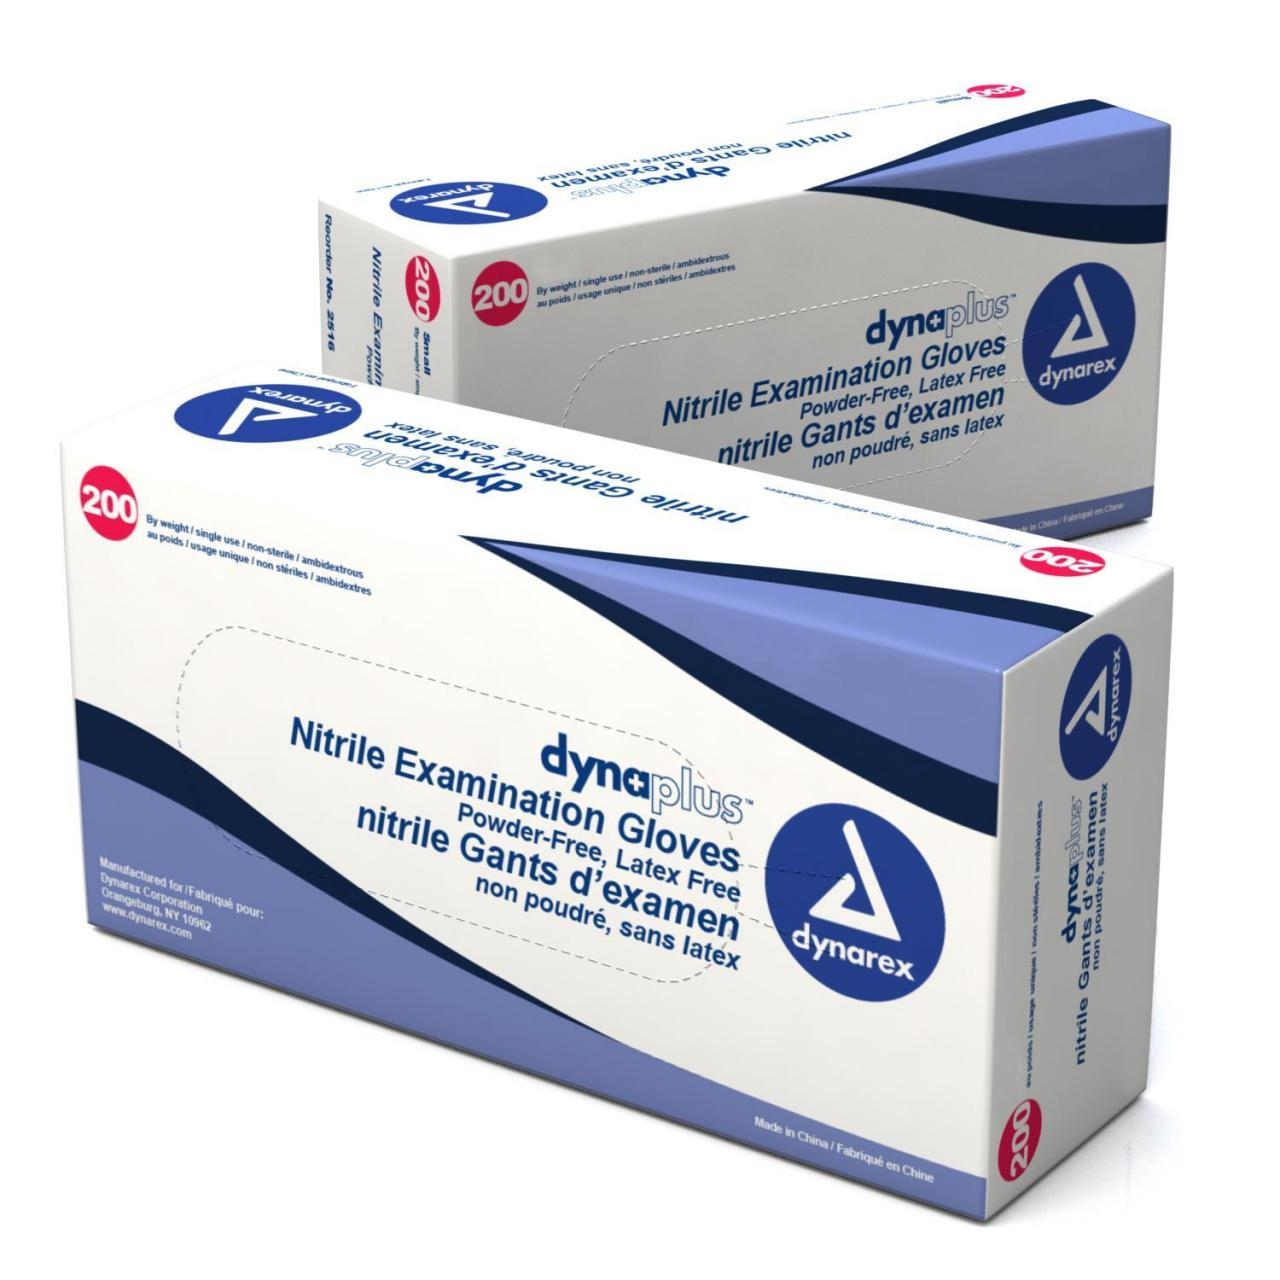 DynaPlus Nitrile Exam Gloves (non-latex) Powder Free (economy) - XS, B 200 BxDYX-2515 Manufactures